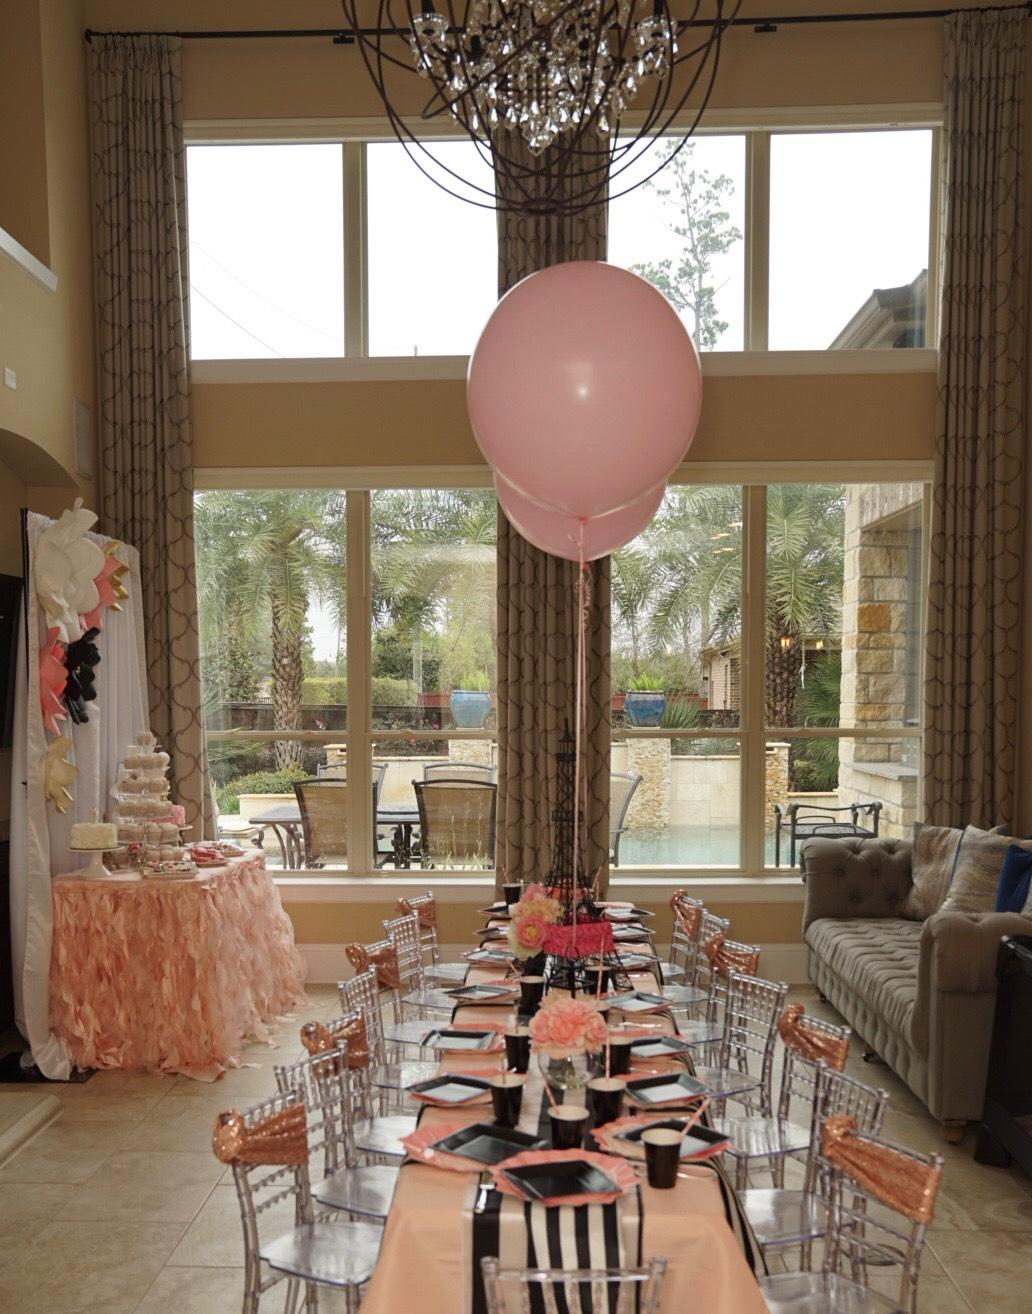 raibows and wishes kids parties in houston.jpg